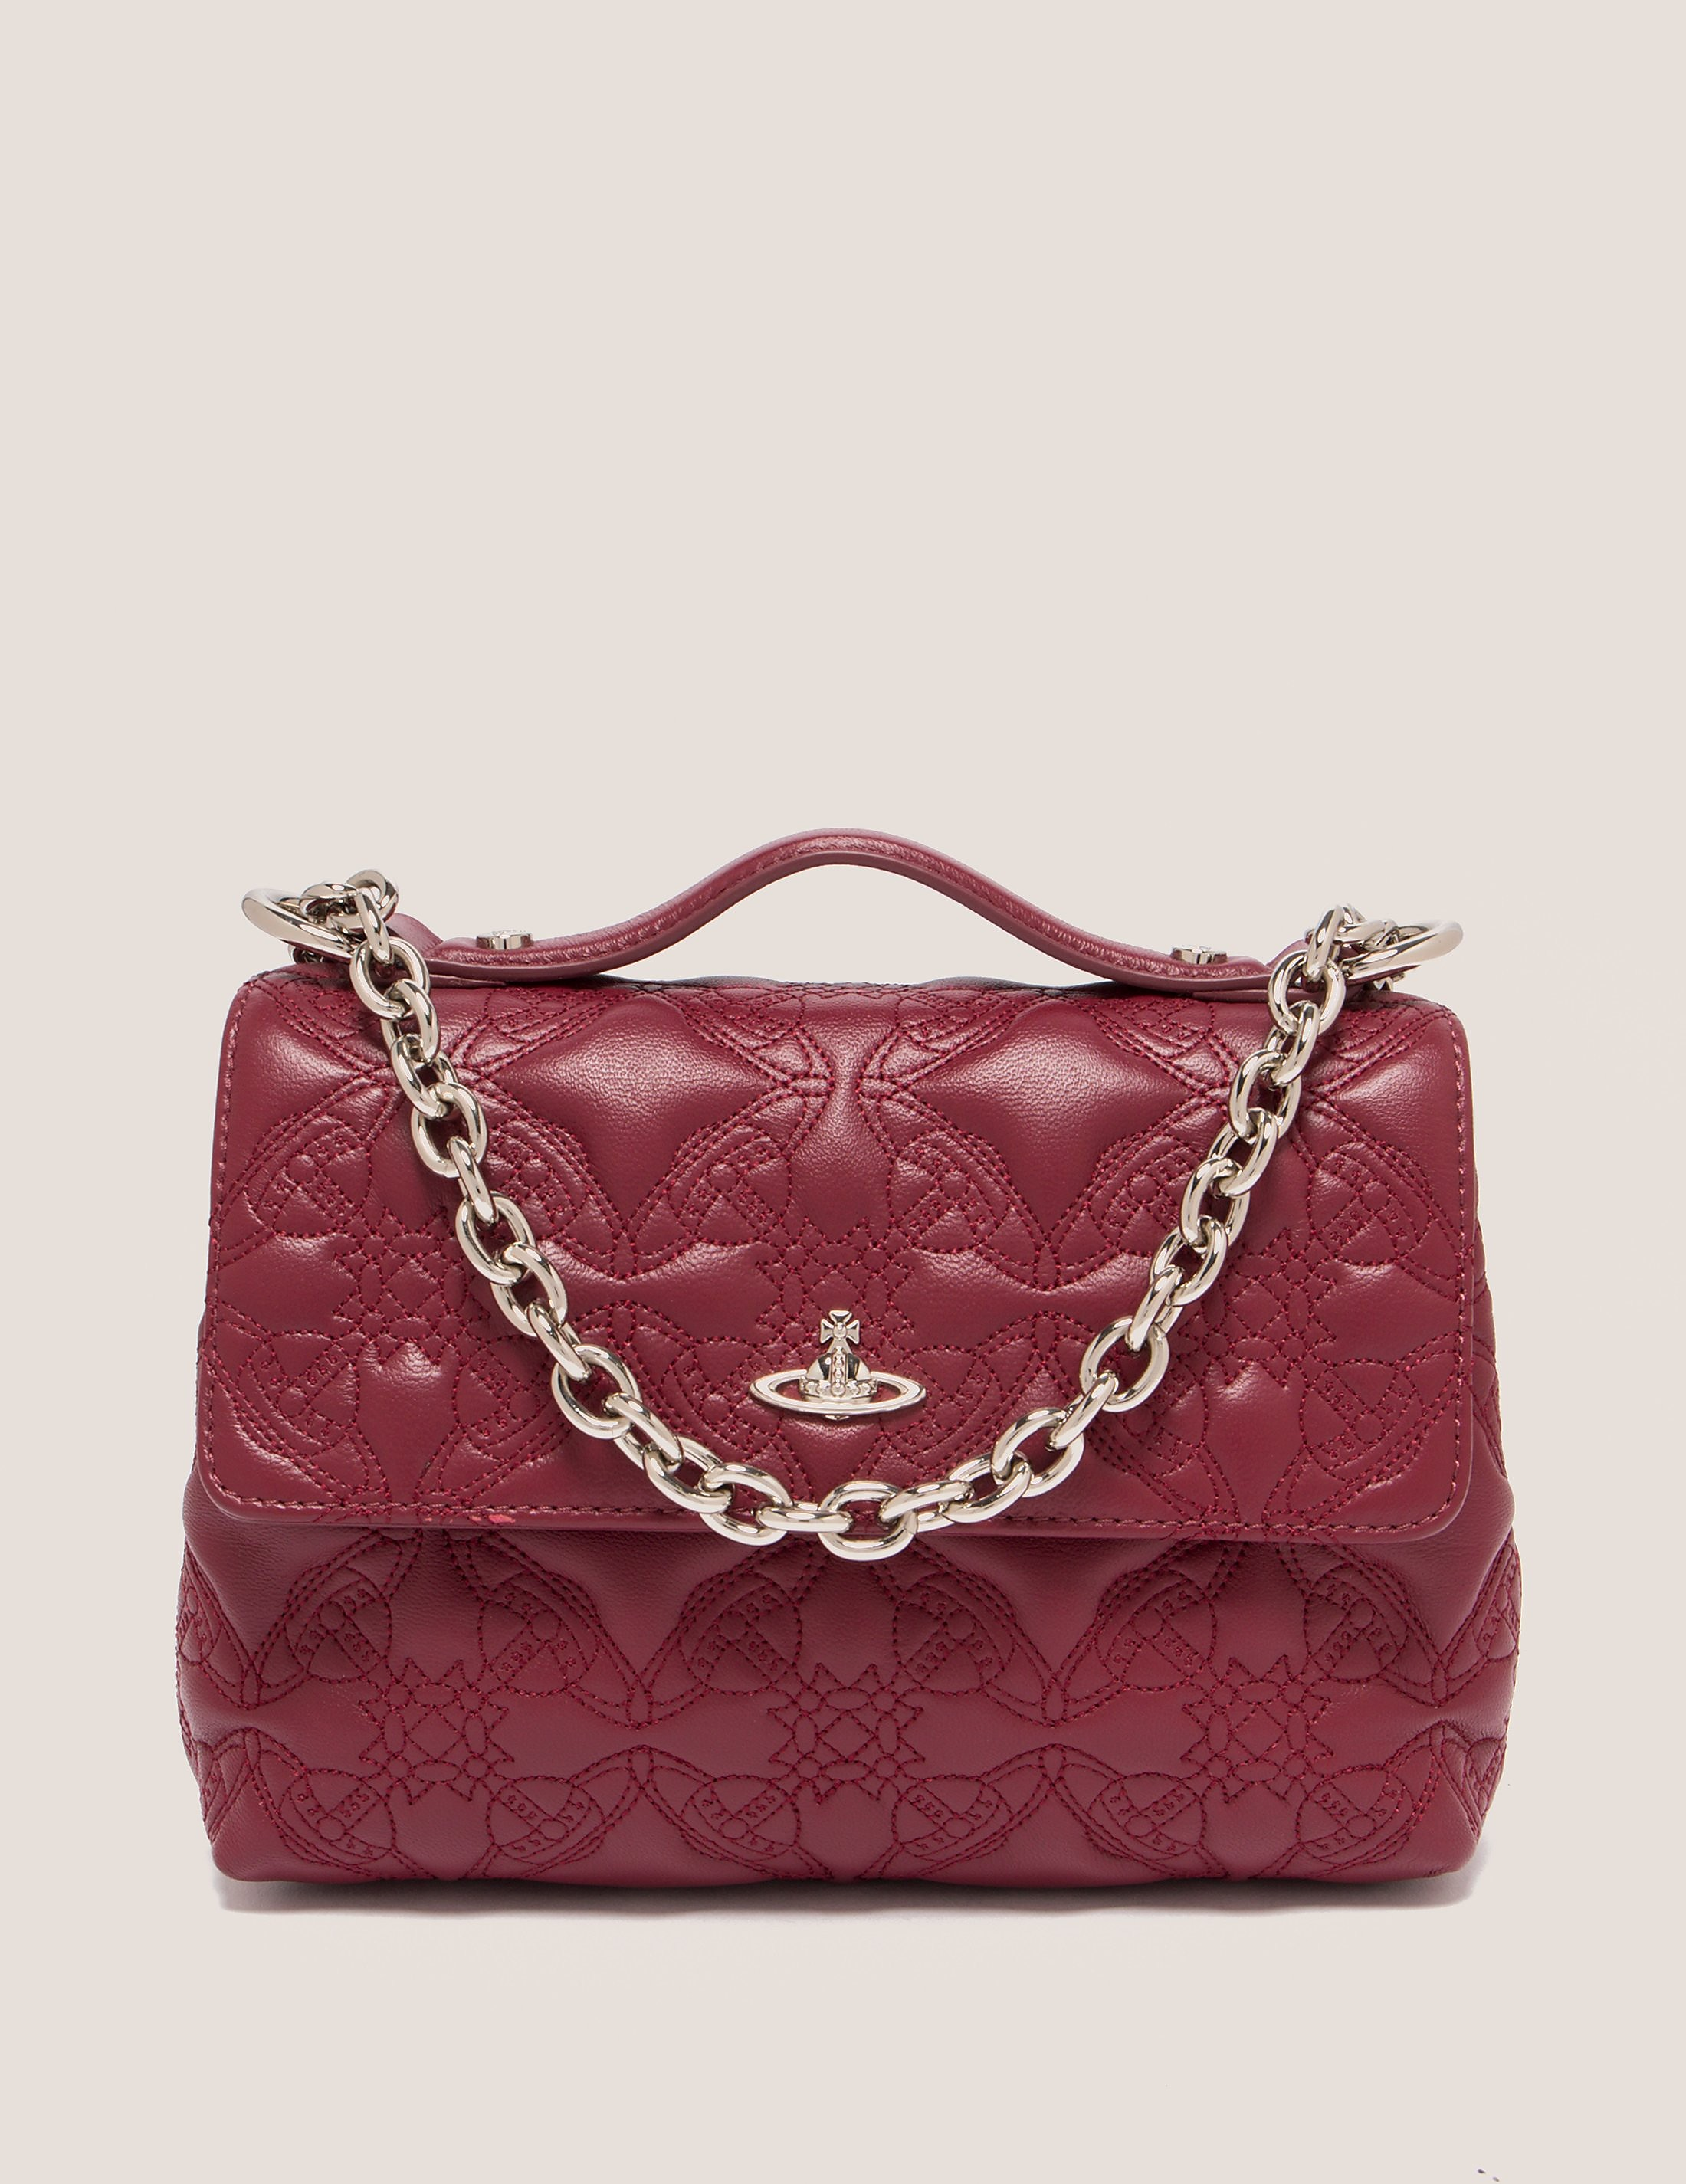 Vivienne Westwood Coventry Bag